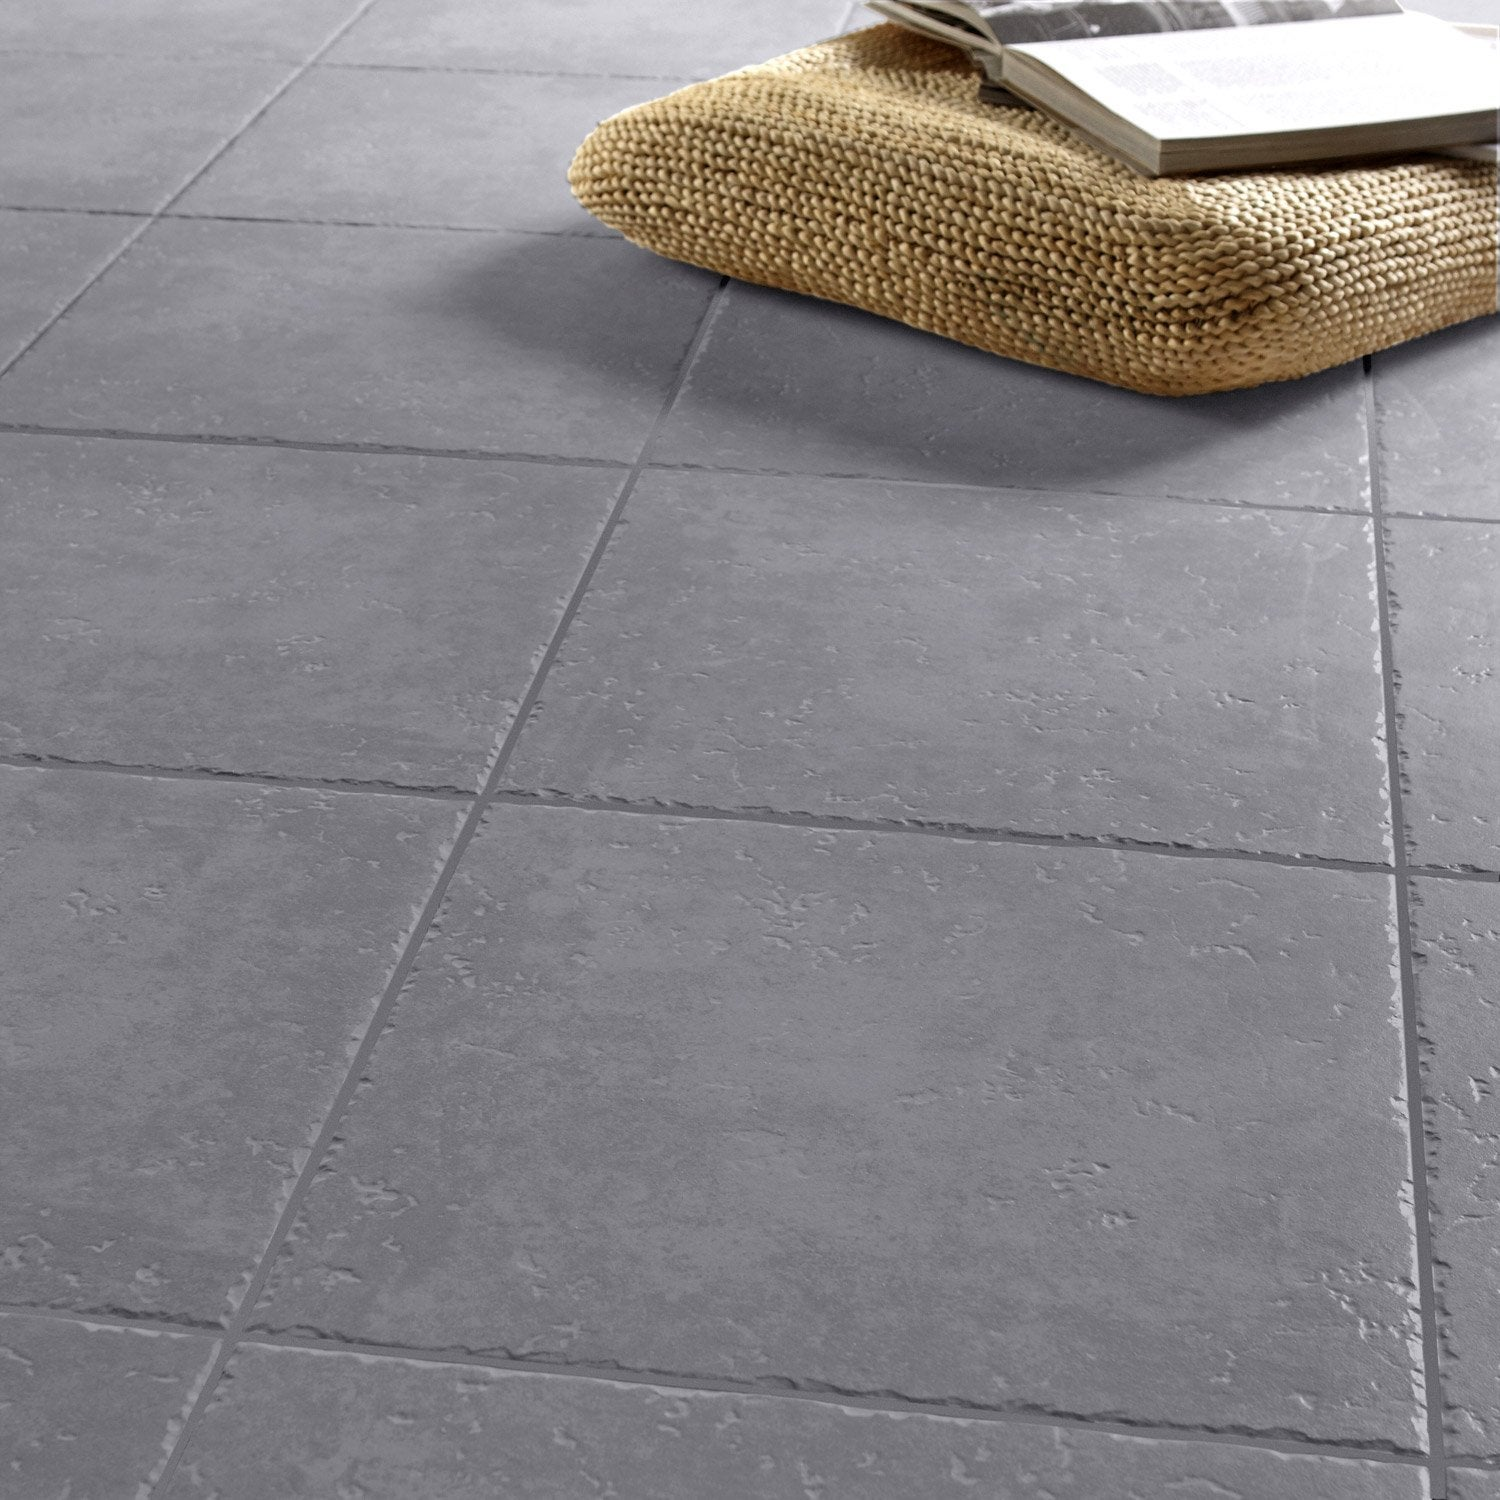 Carrelage sol gris anthracite effet pierre michigan x cm leroy merlin - Joint carrelage gris anthracite ...